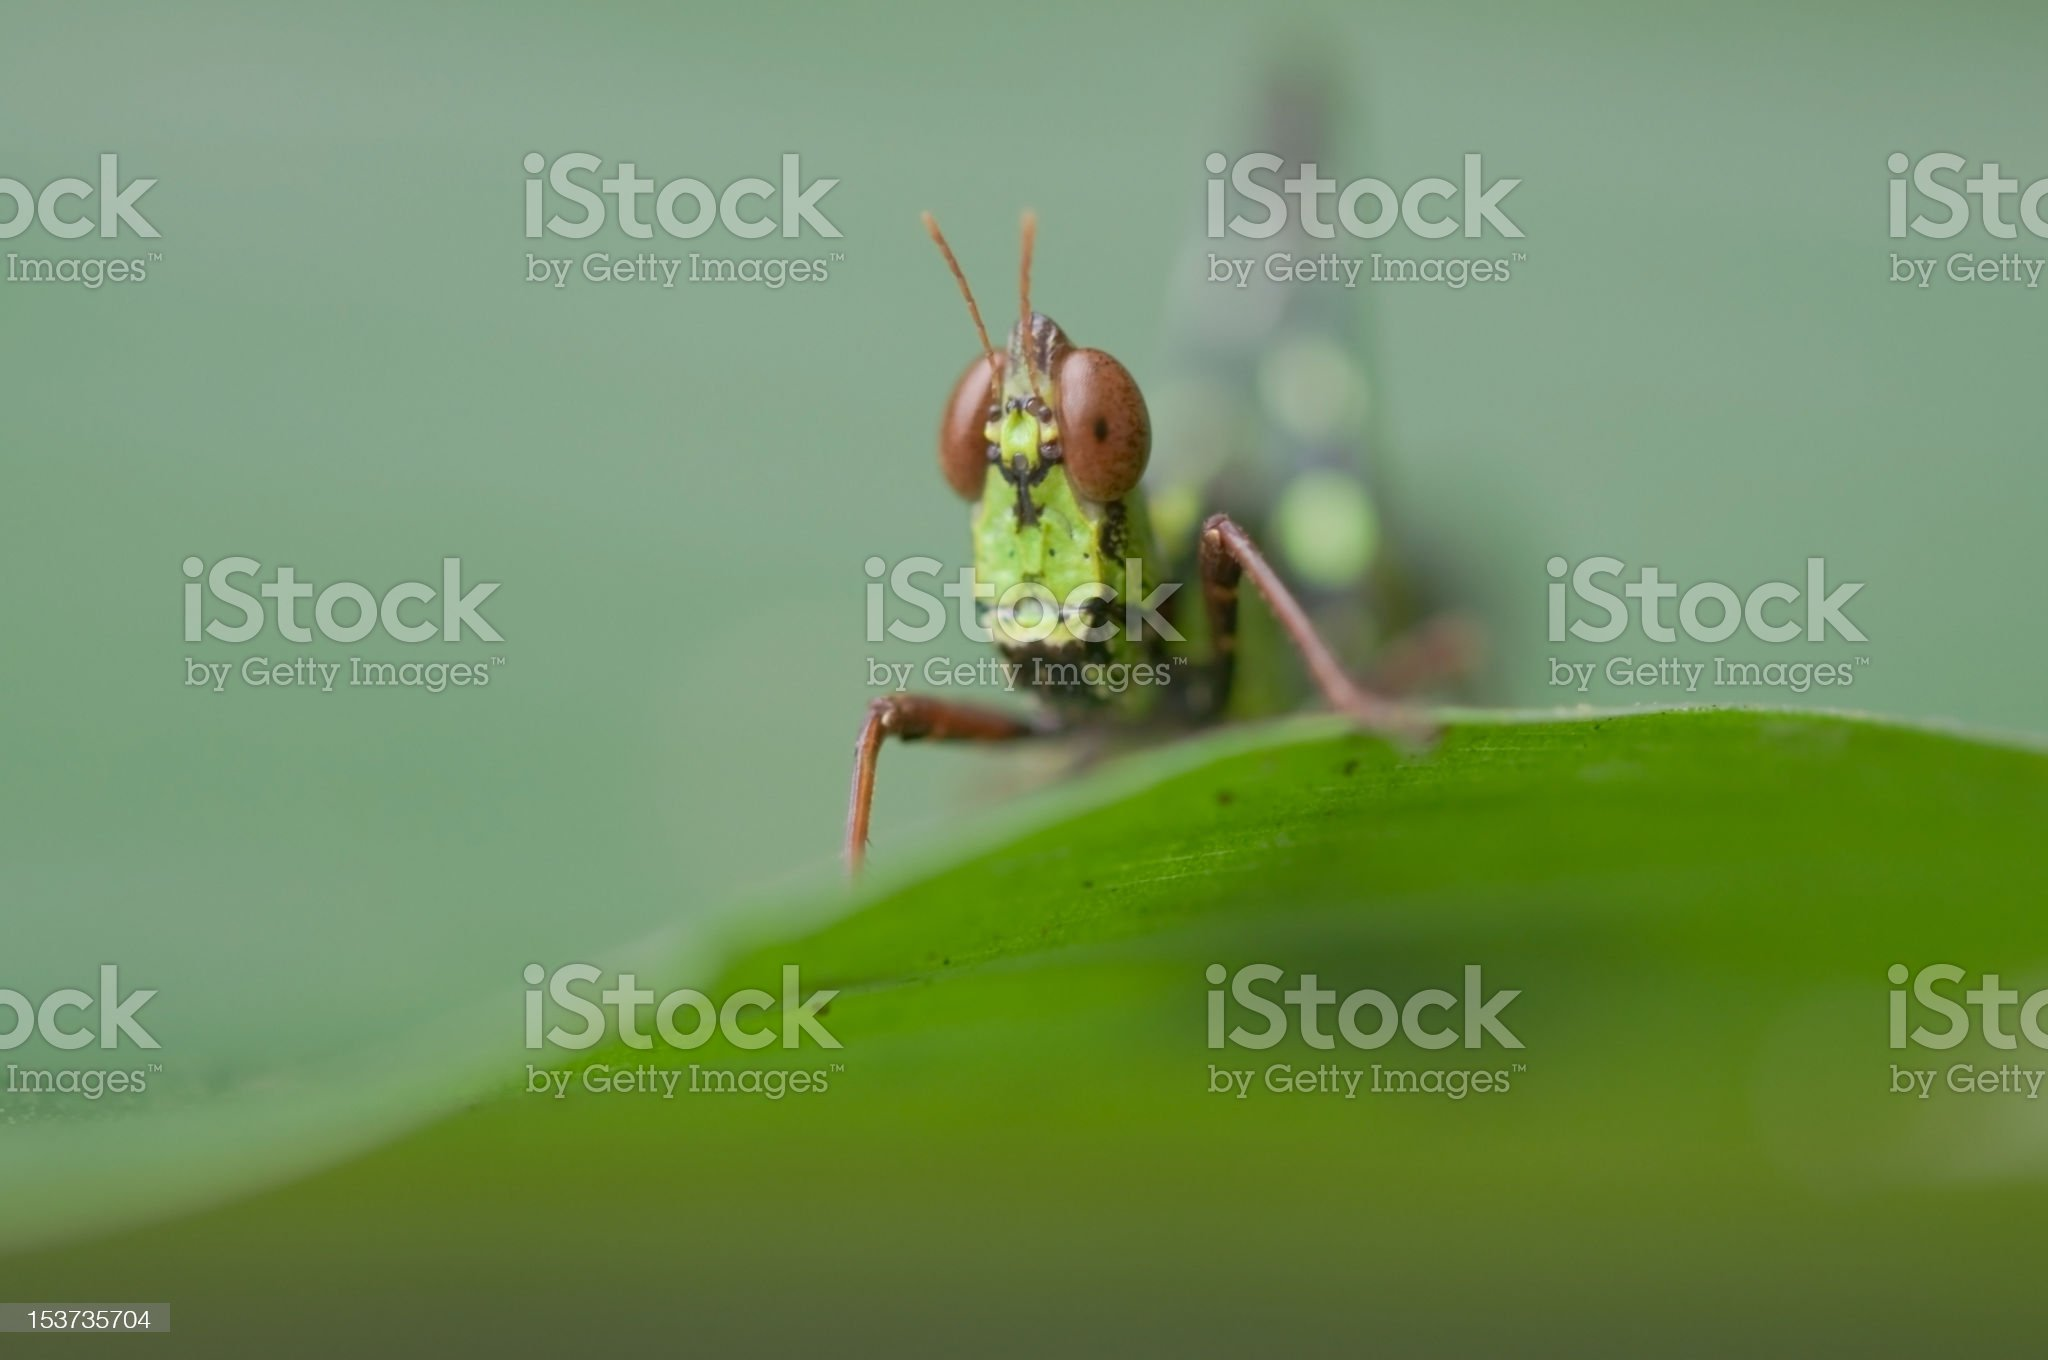 Grasshopper on a green leaf. royalty-free stock photo